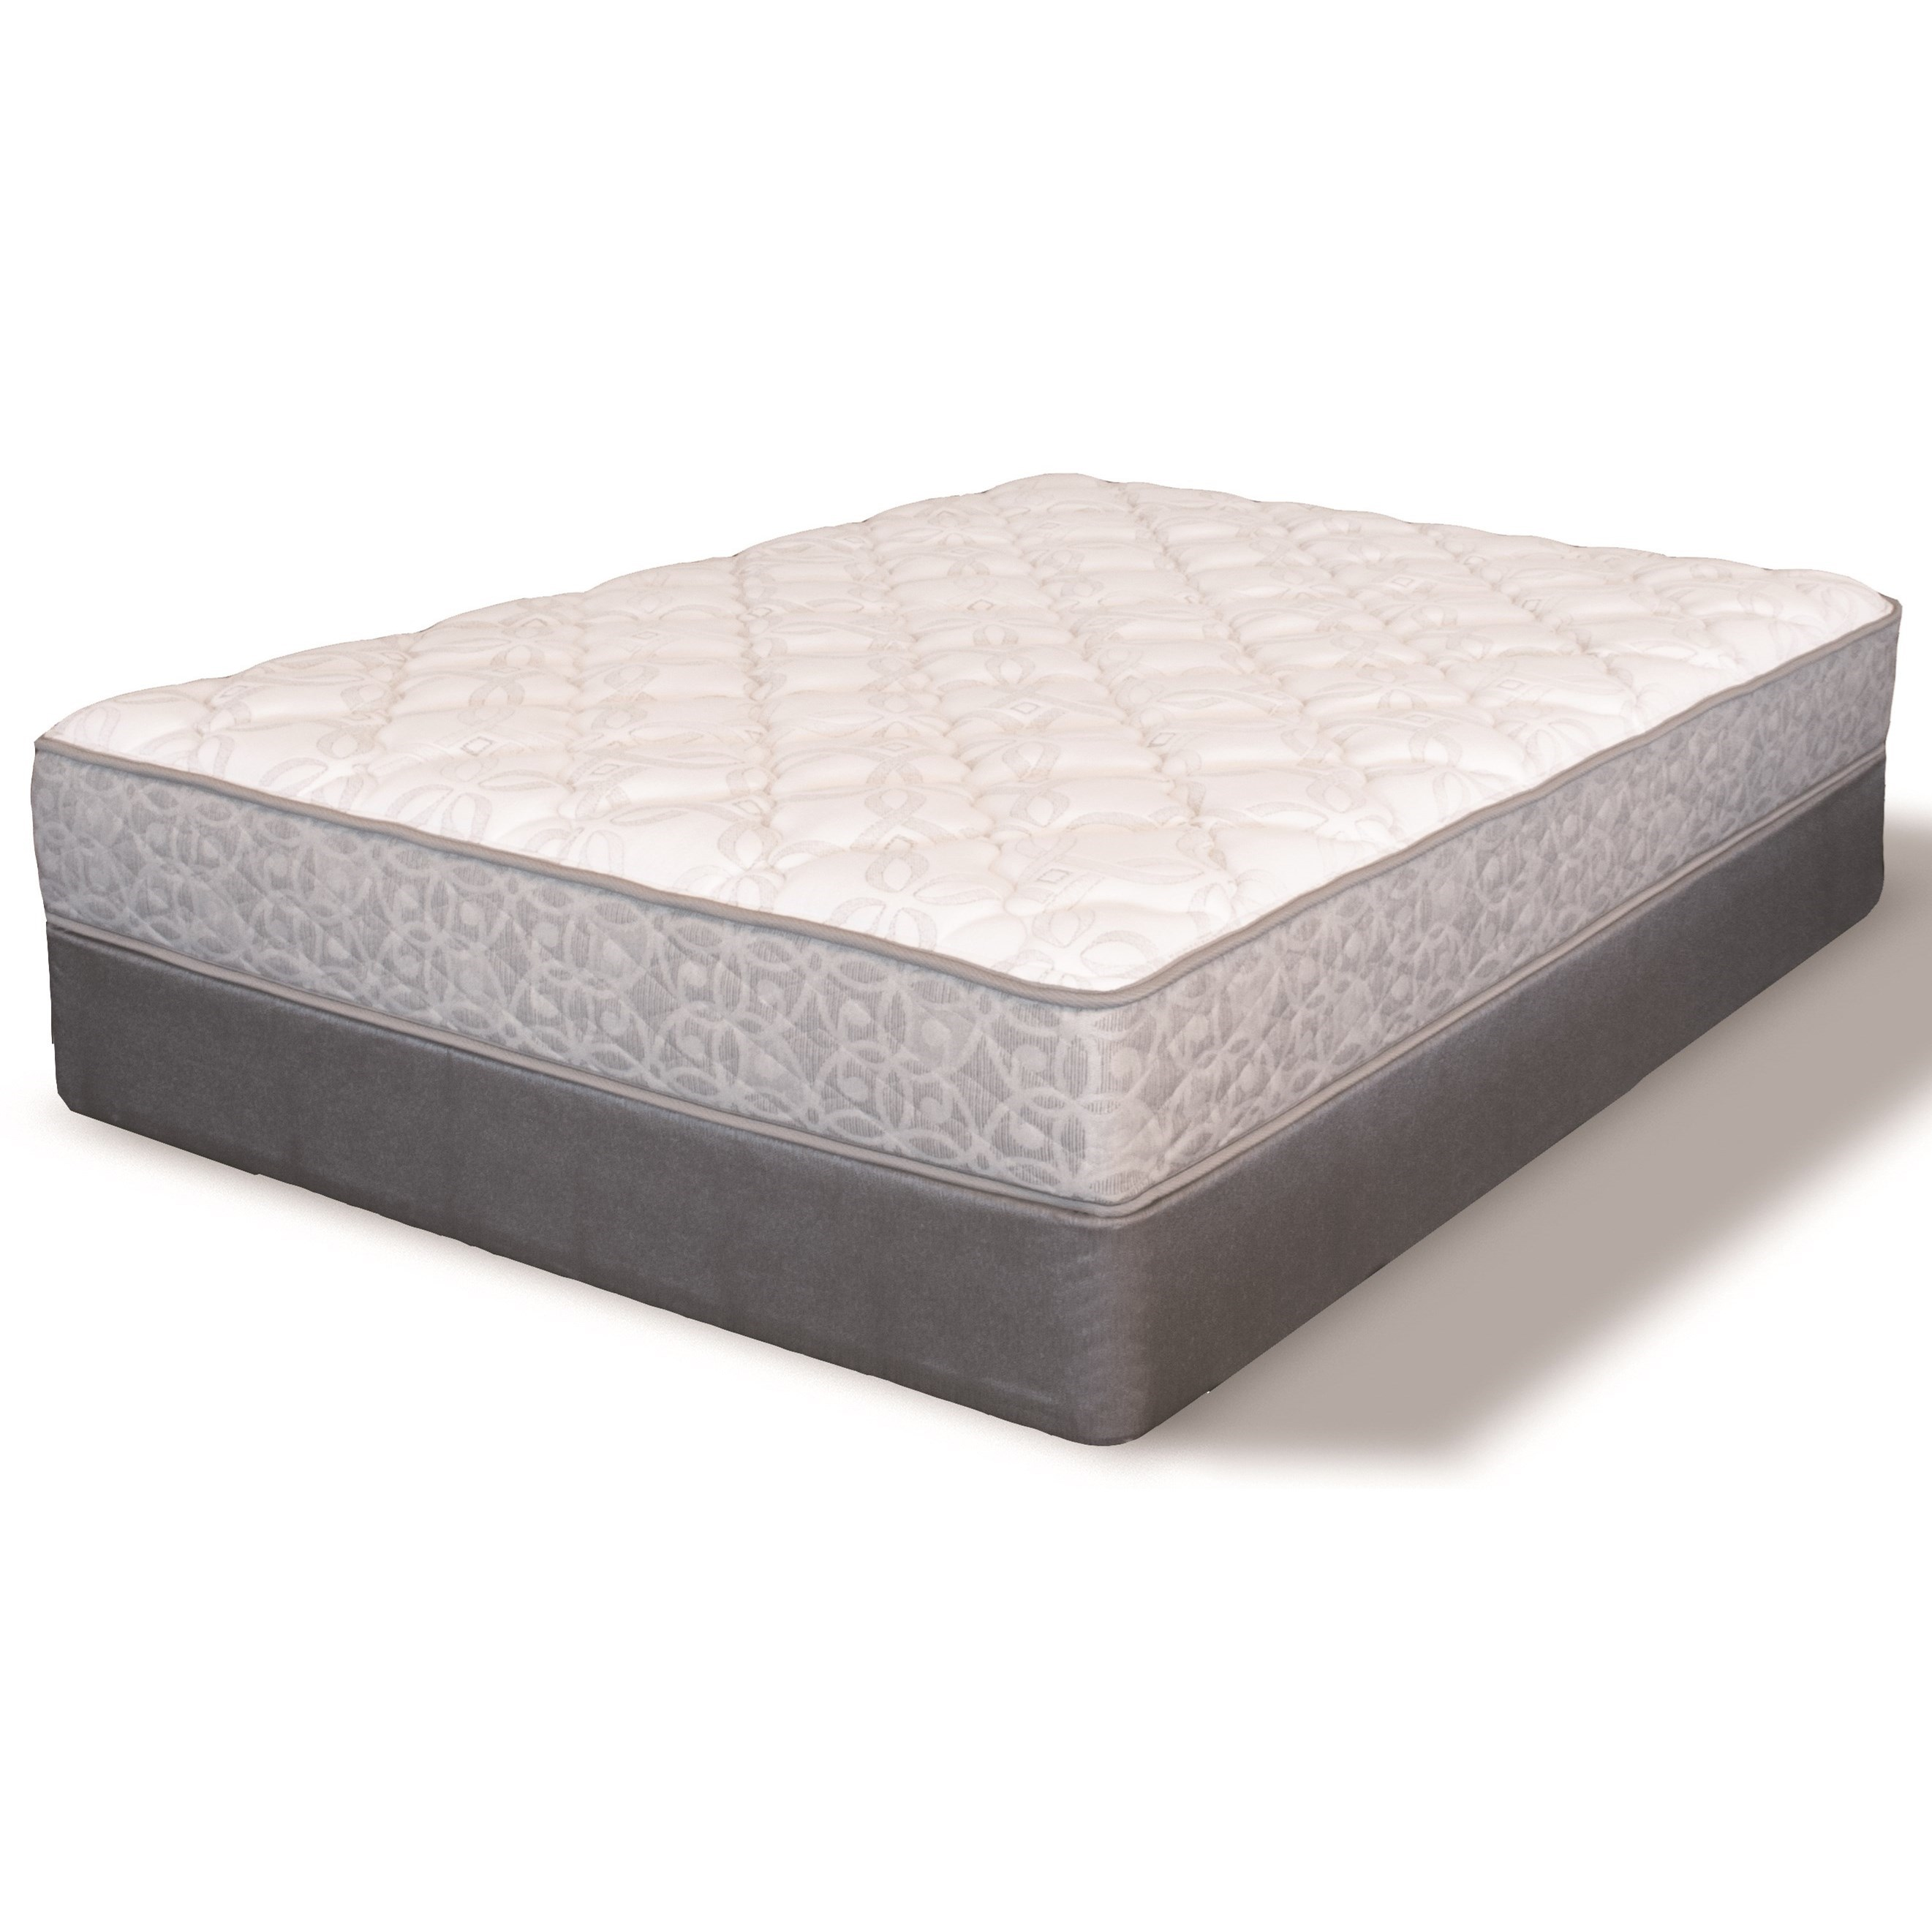 Low Profile Innerspring Mattress Serta Ms Heidleburg Plush Twin Plush Innerspring Mattress